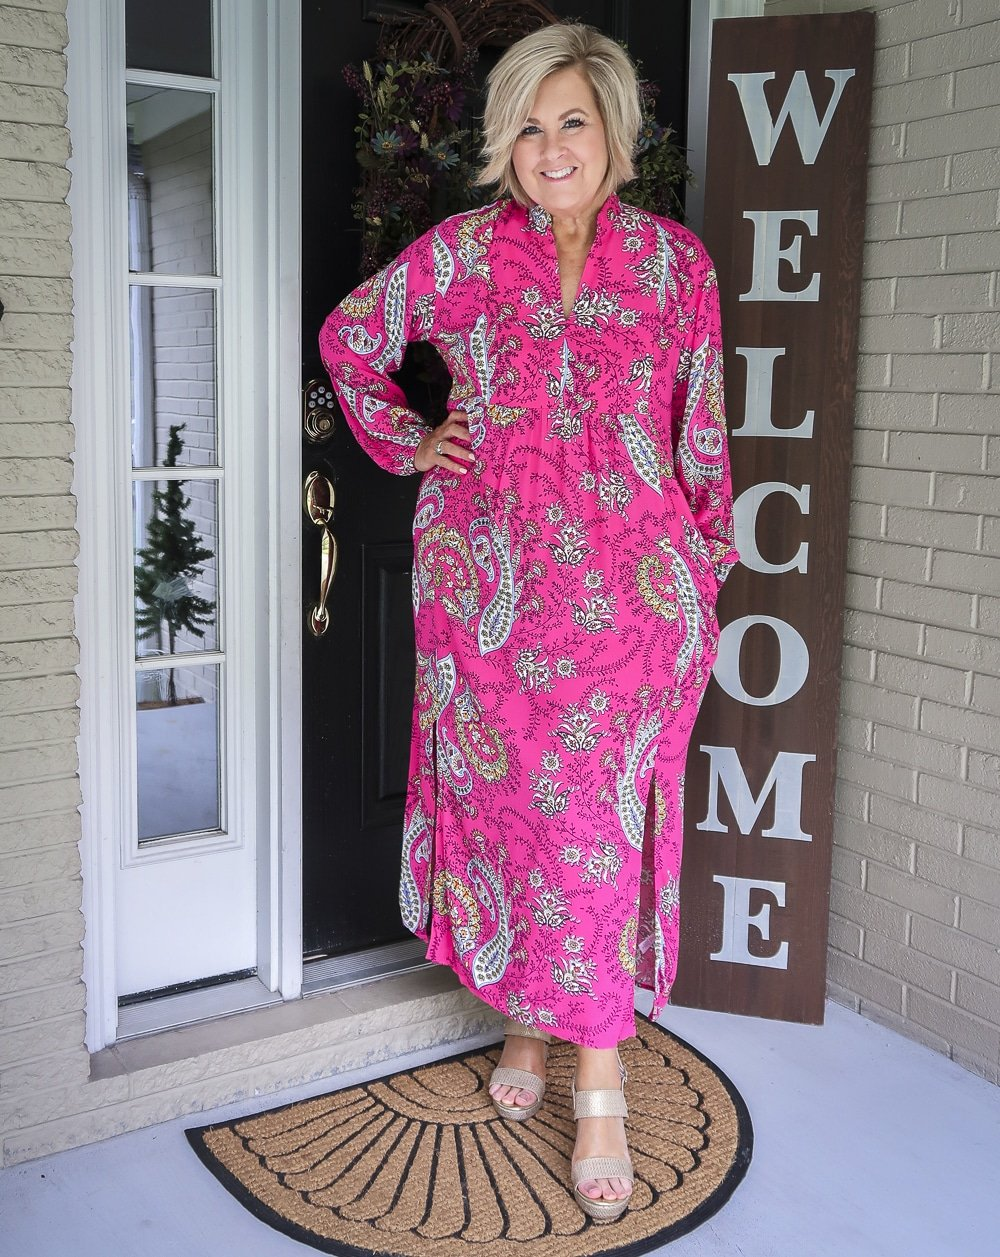 Fashion Blogger 50 Is Not Old is wearing a bright pink paisley midi dress and gold espadrille sandals